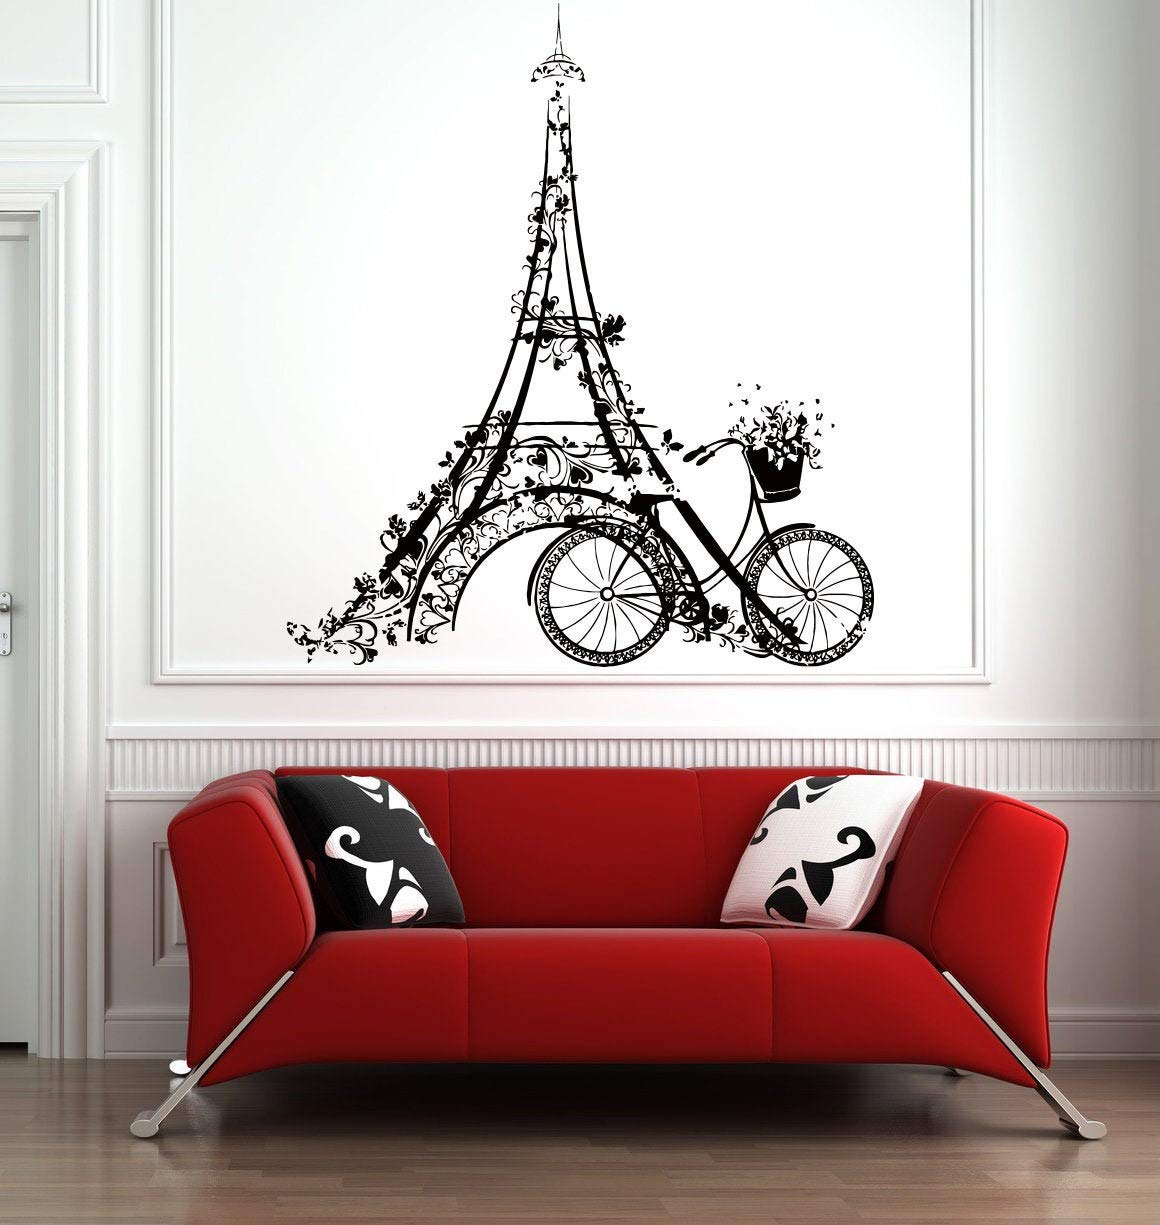 Paris Wall Decal | Paris Skyline Wall Sticker | Eiffel Tower Wall Art | Eiffel Tower Wall Decor PR3